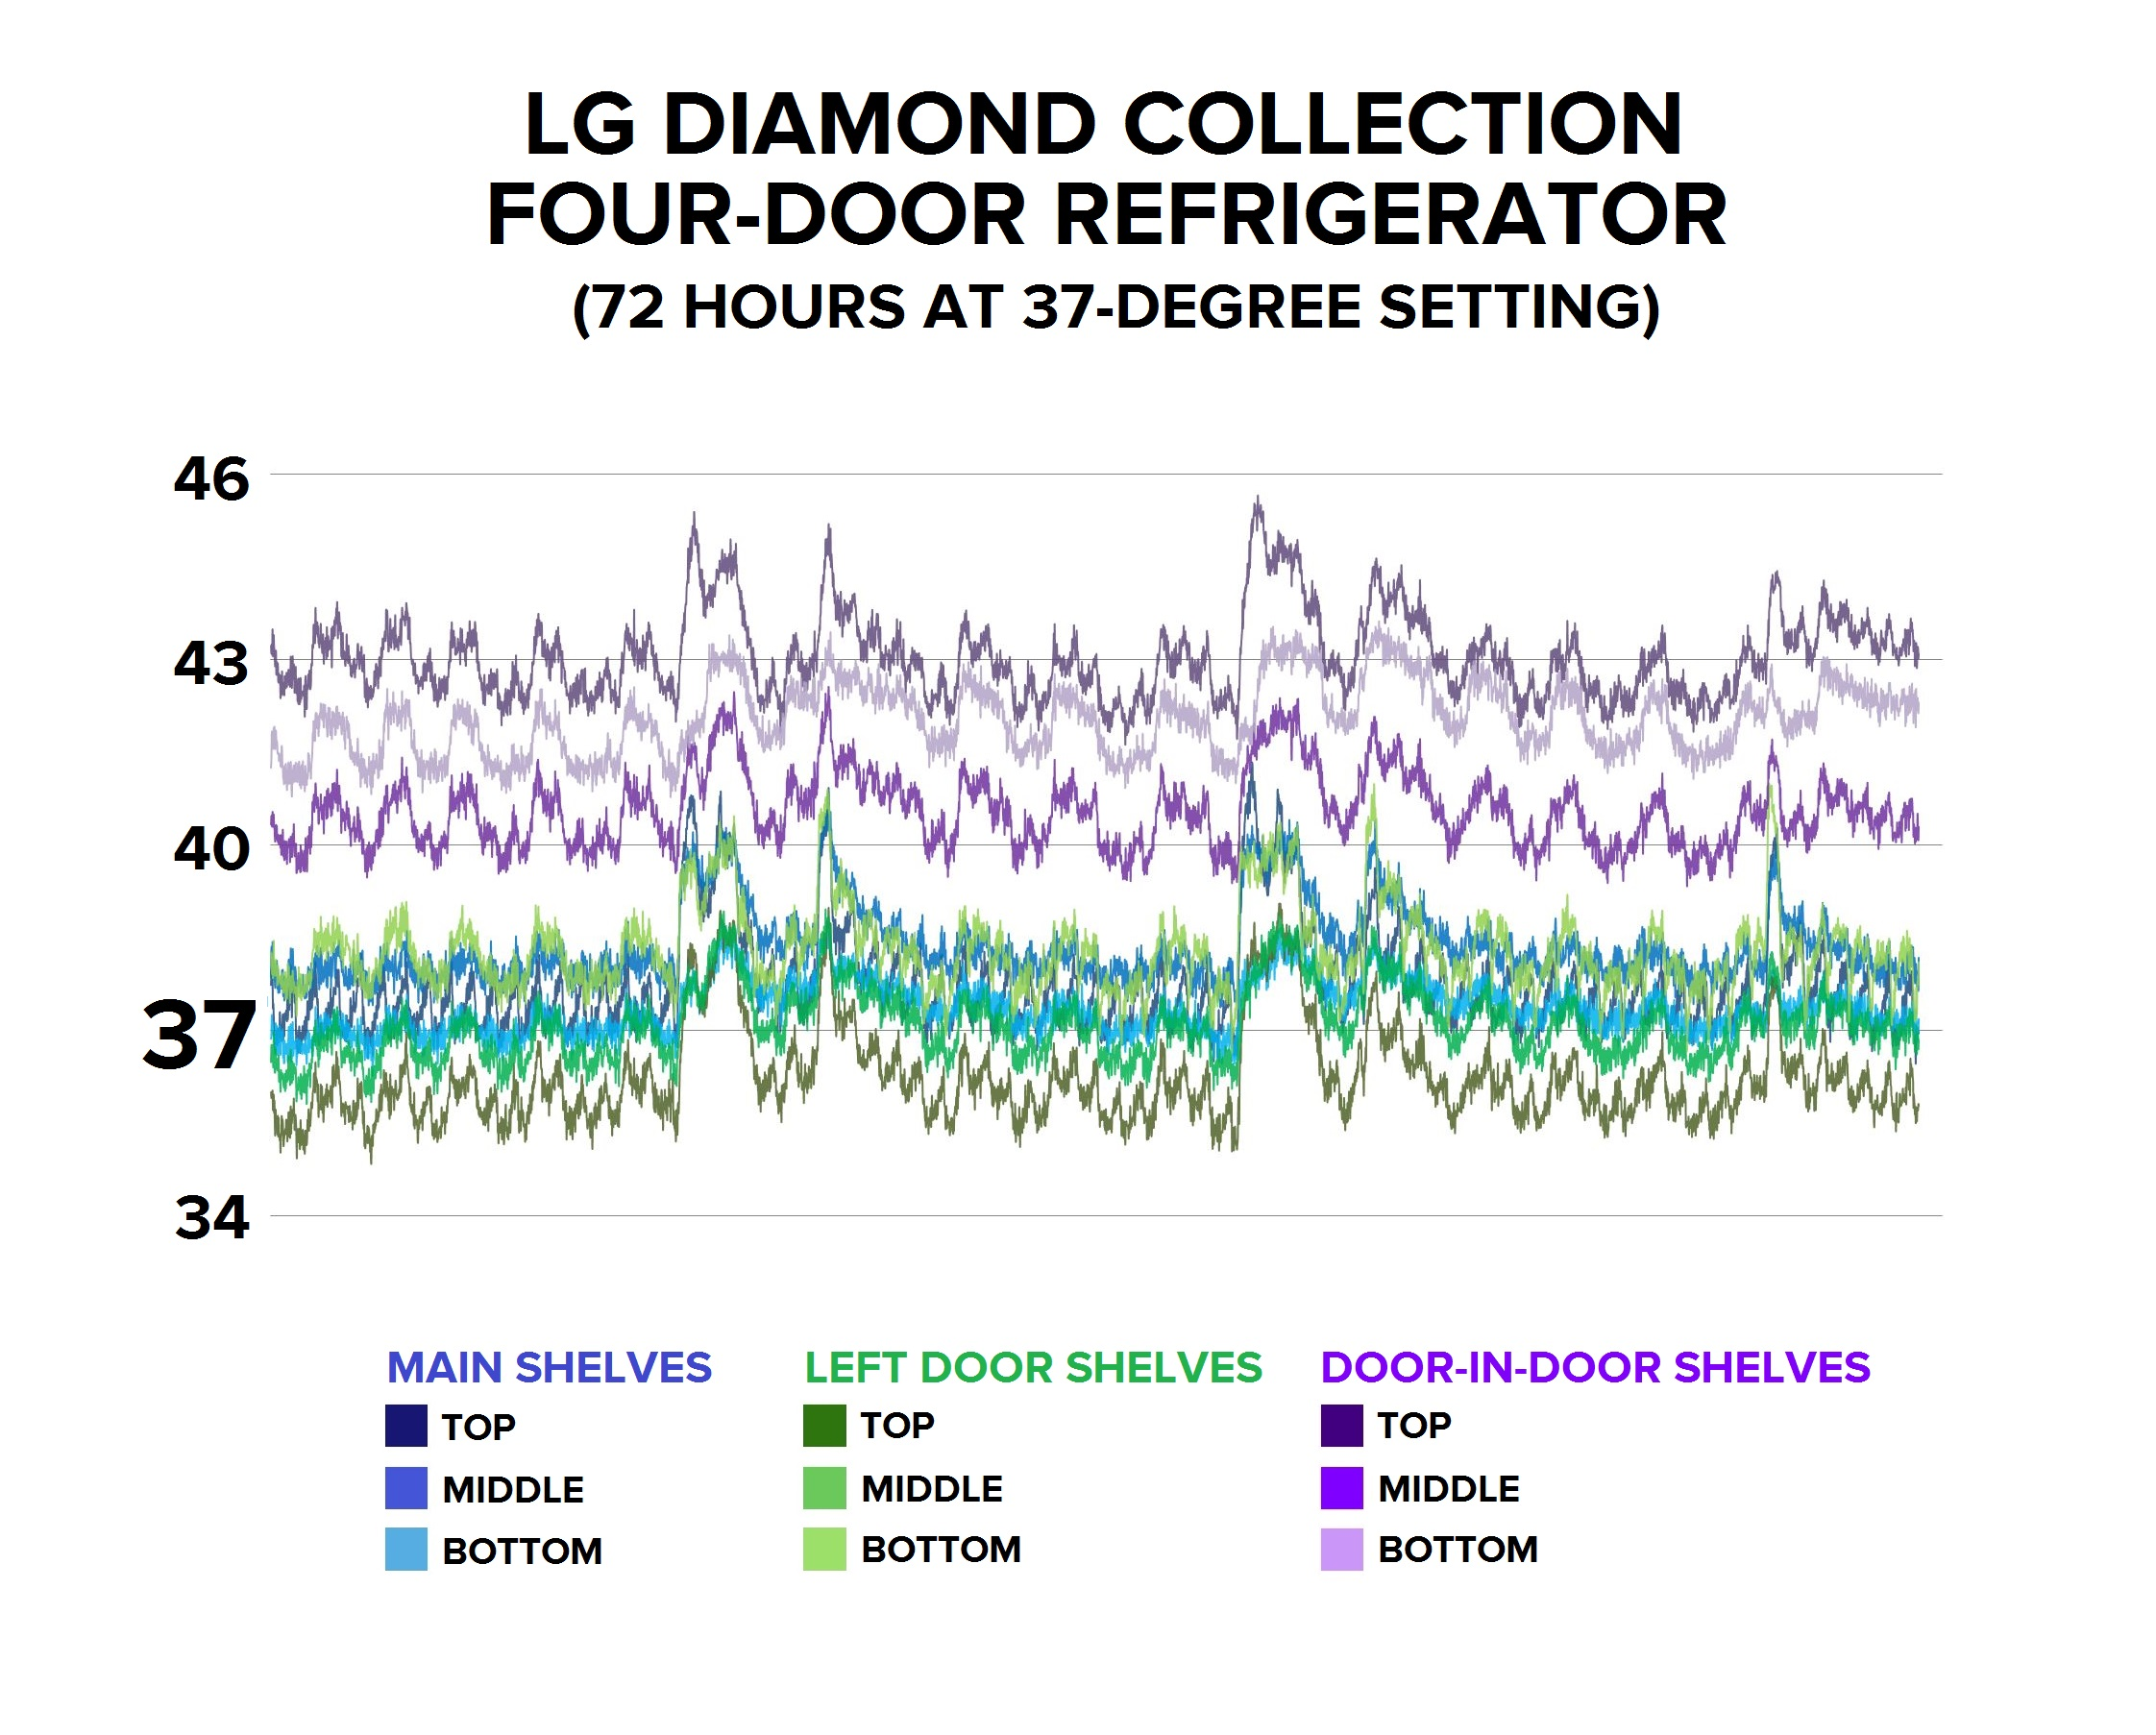 lg-diamond-collection-refrigerator-lpxs30866d-temp-graph-37.jpg